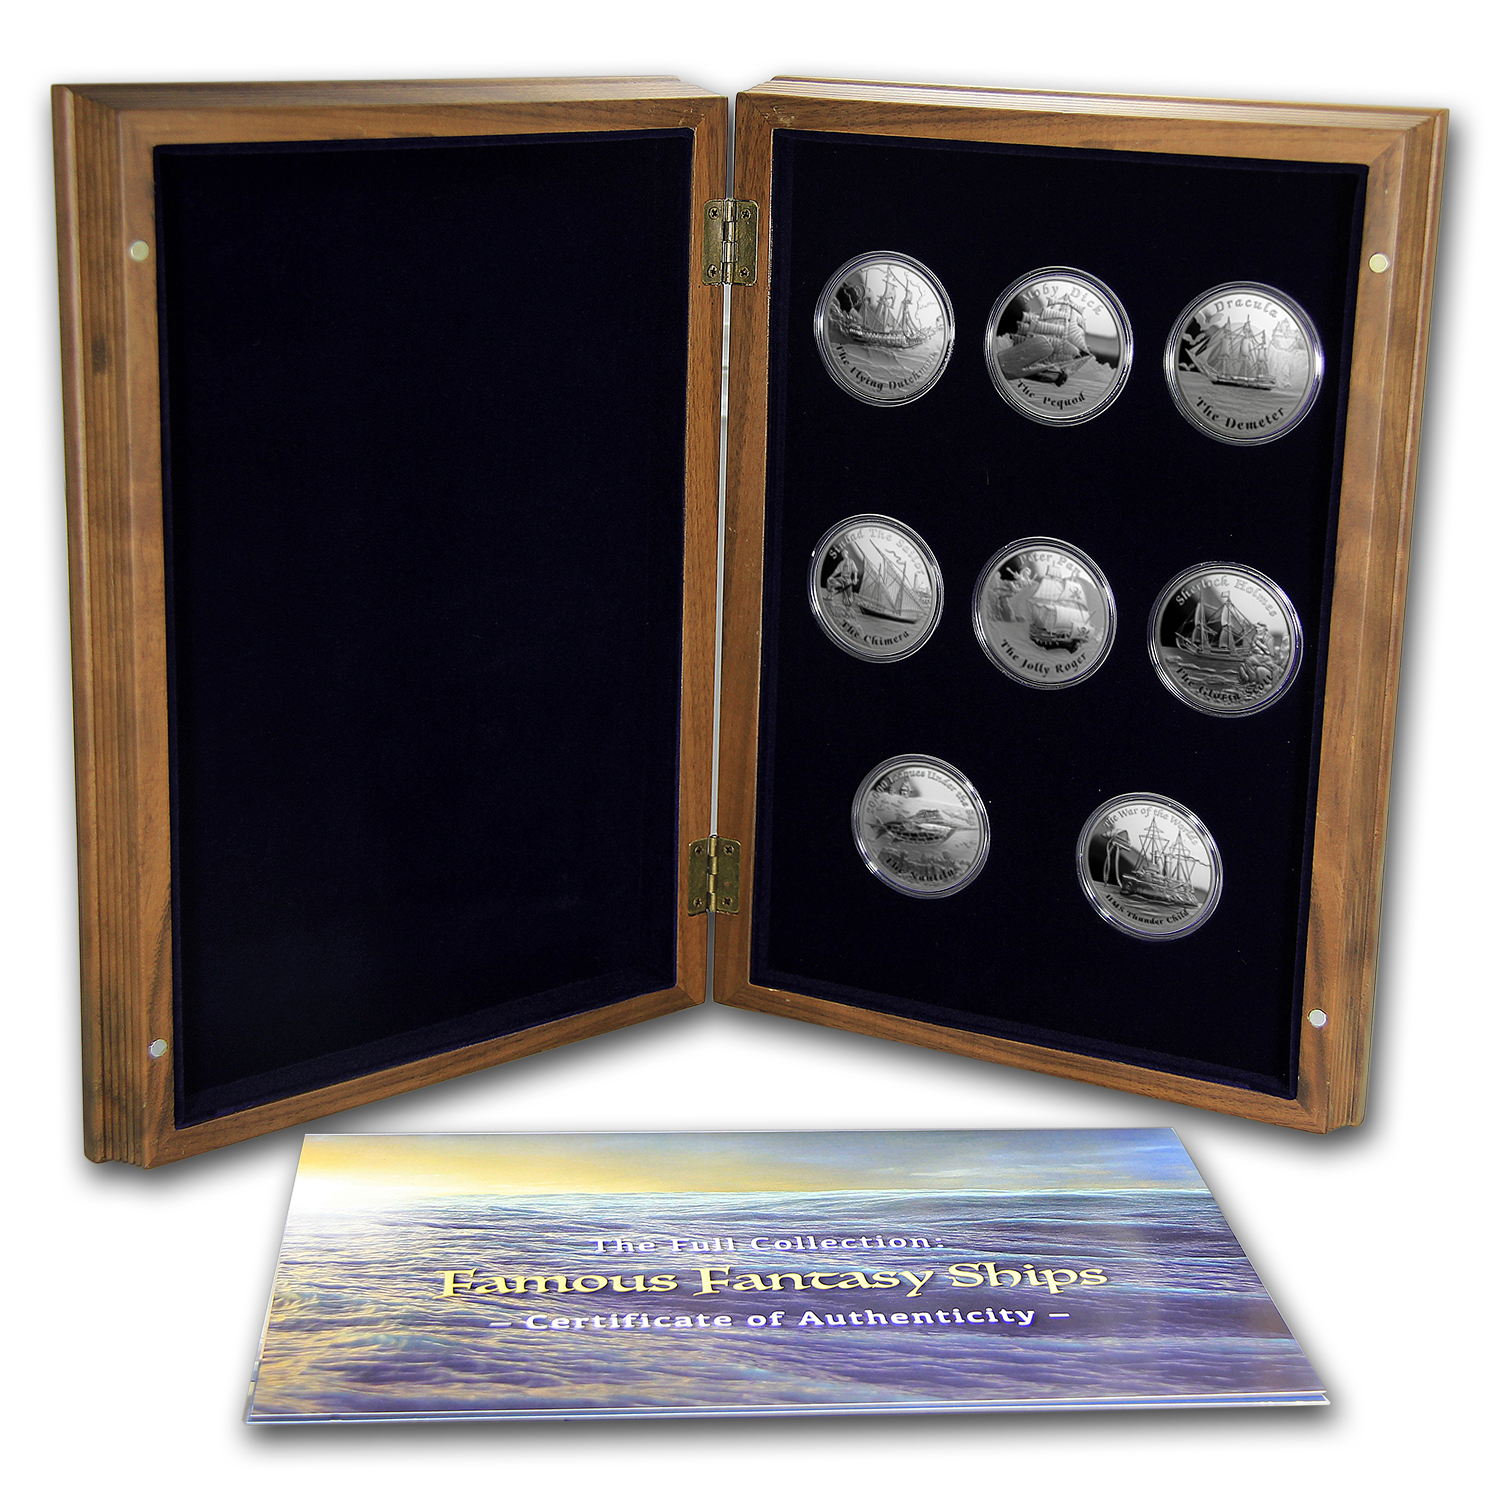 2016 Tuvalu 8-Coin Silver Fantasy Ships Proof Set